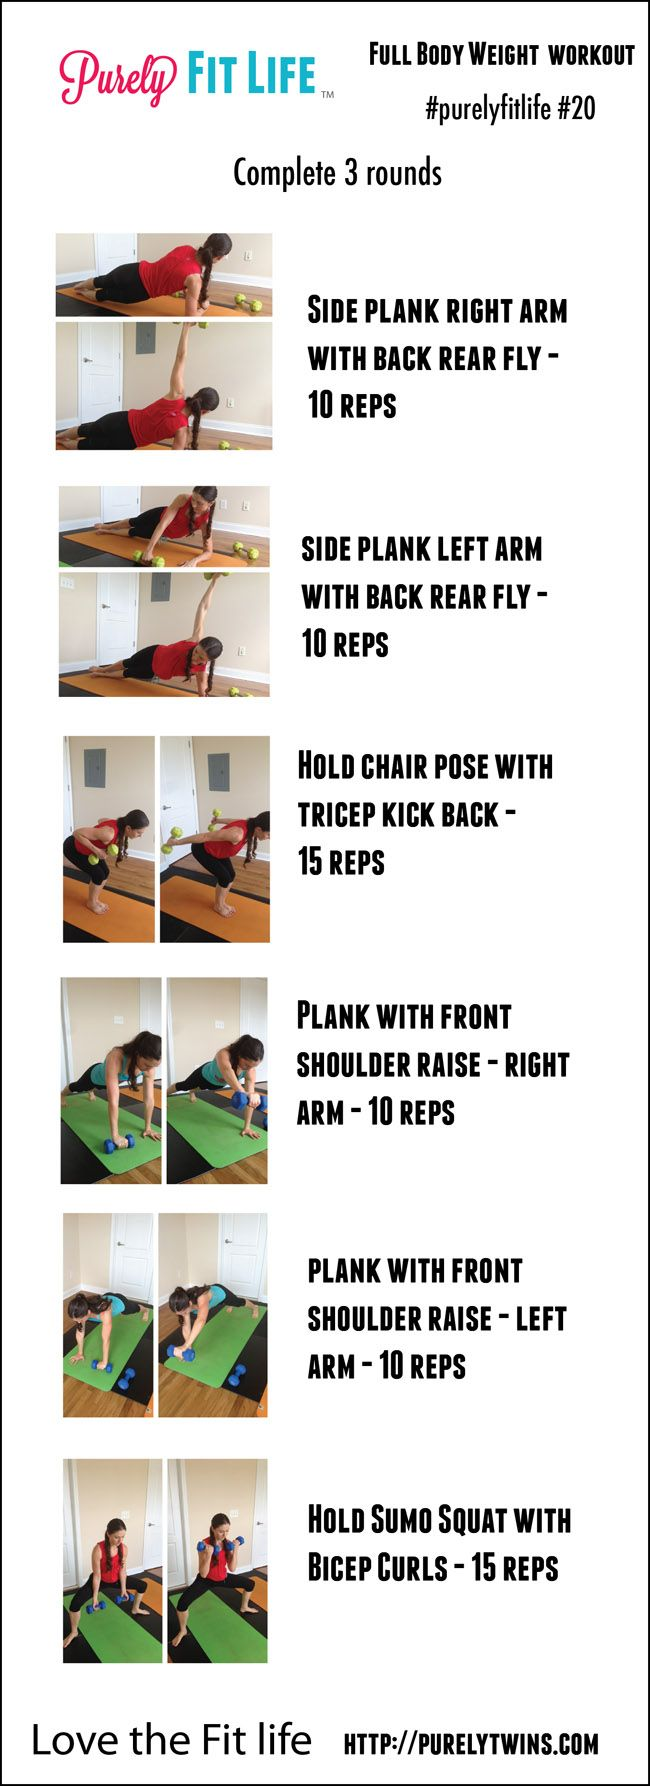 Full body free weight #workout great for a strong back and core #purelyfitlife 20 #fitfluential